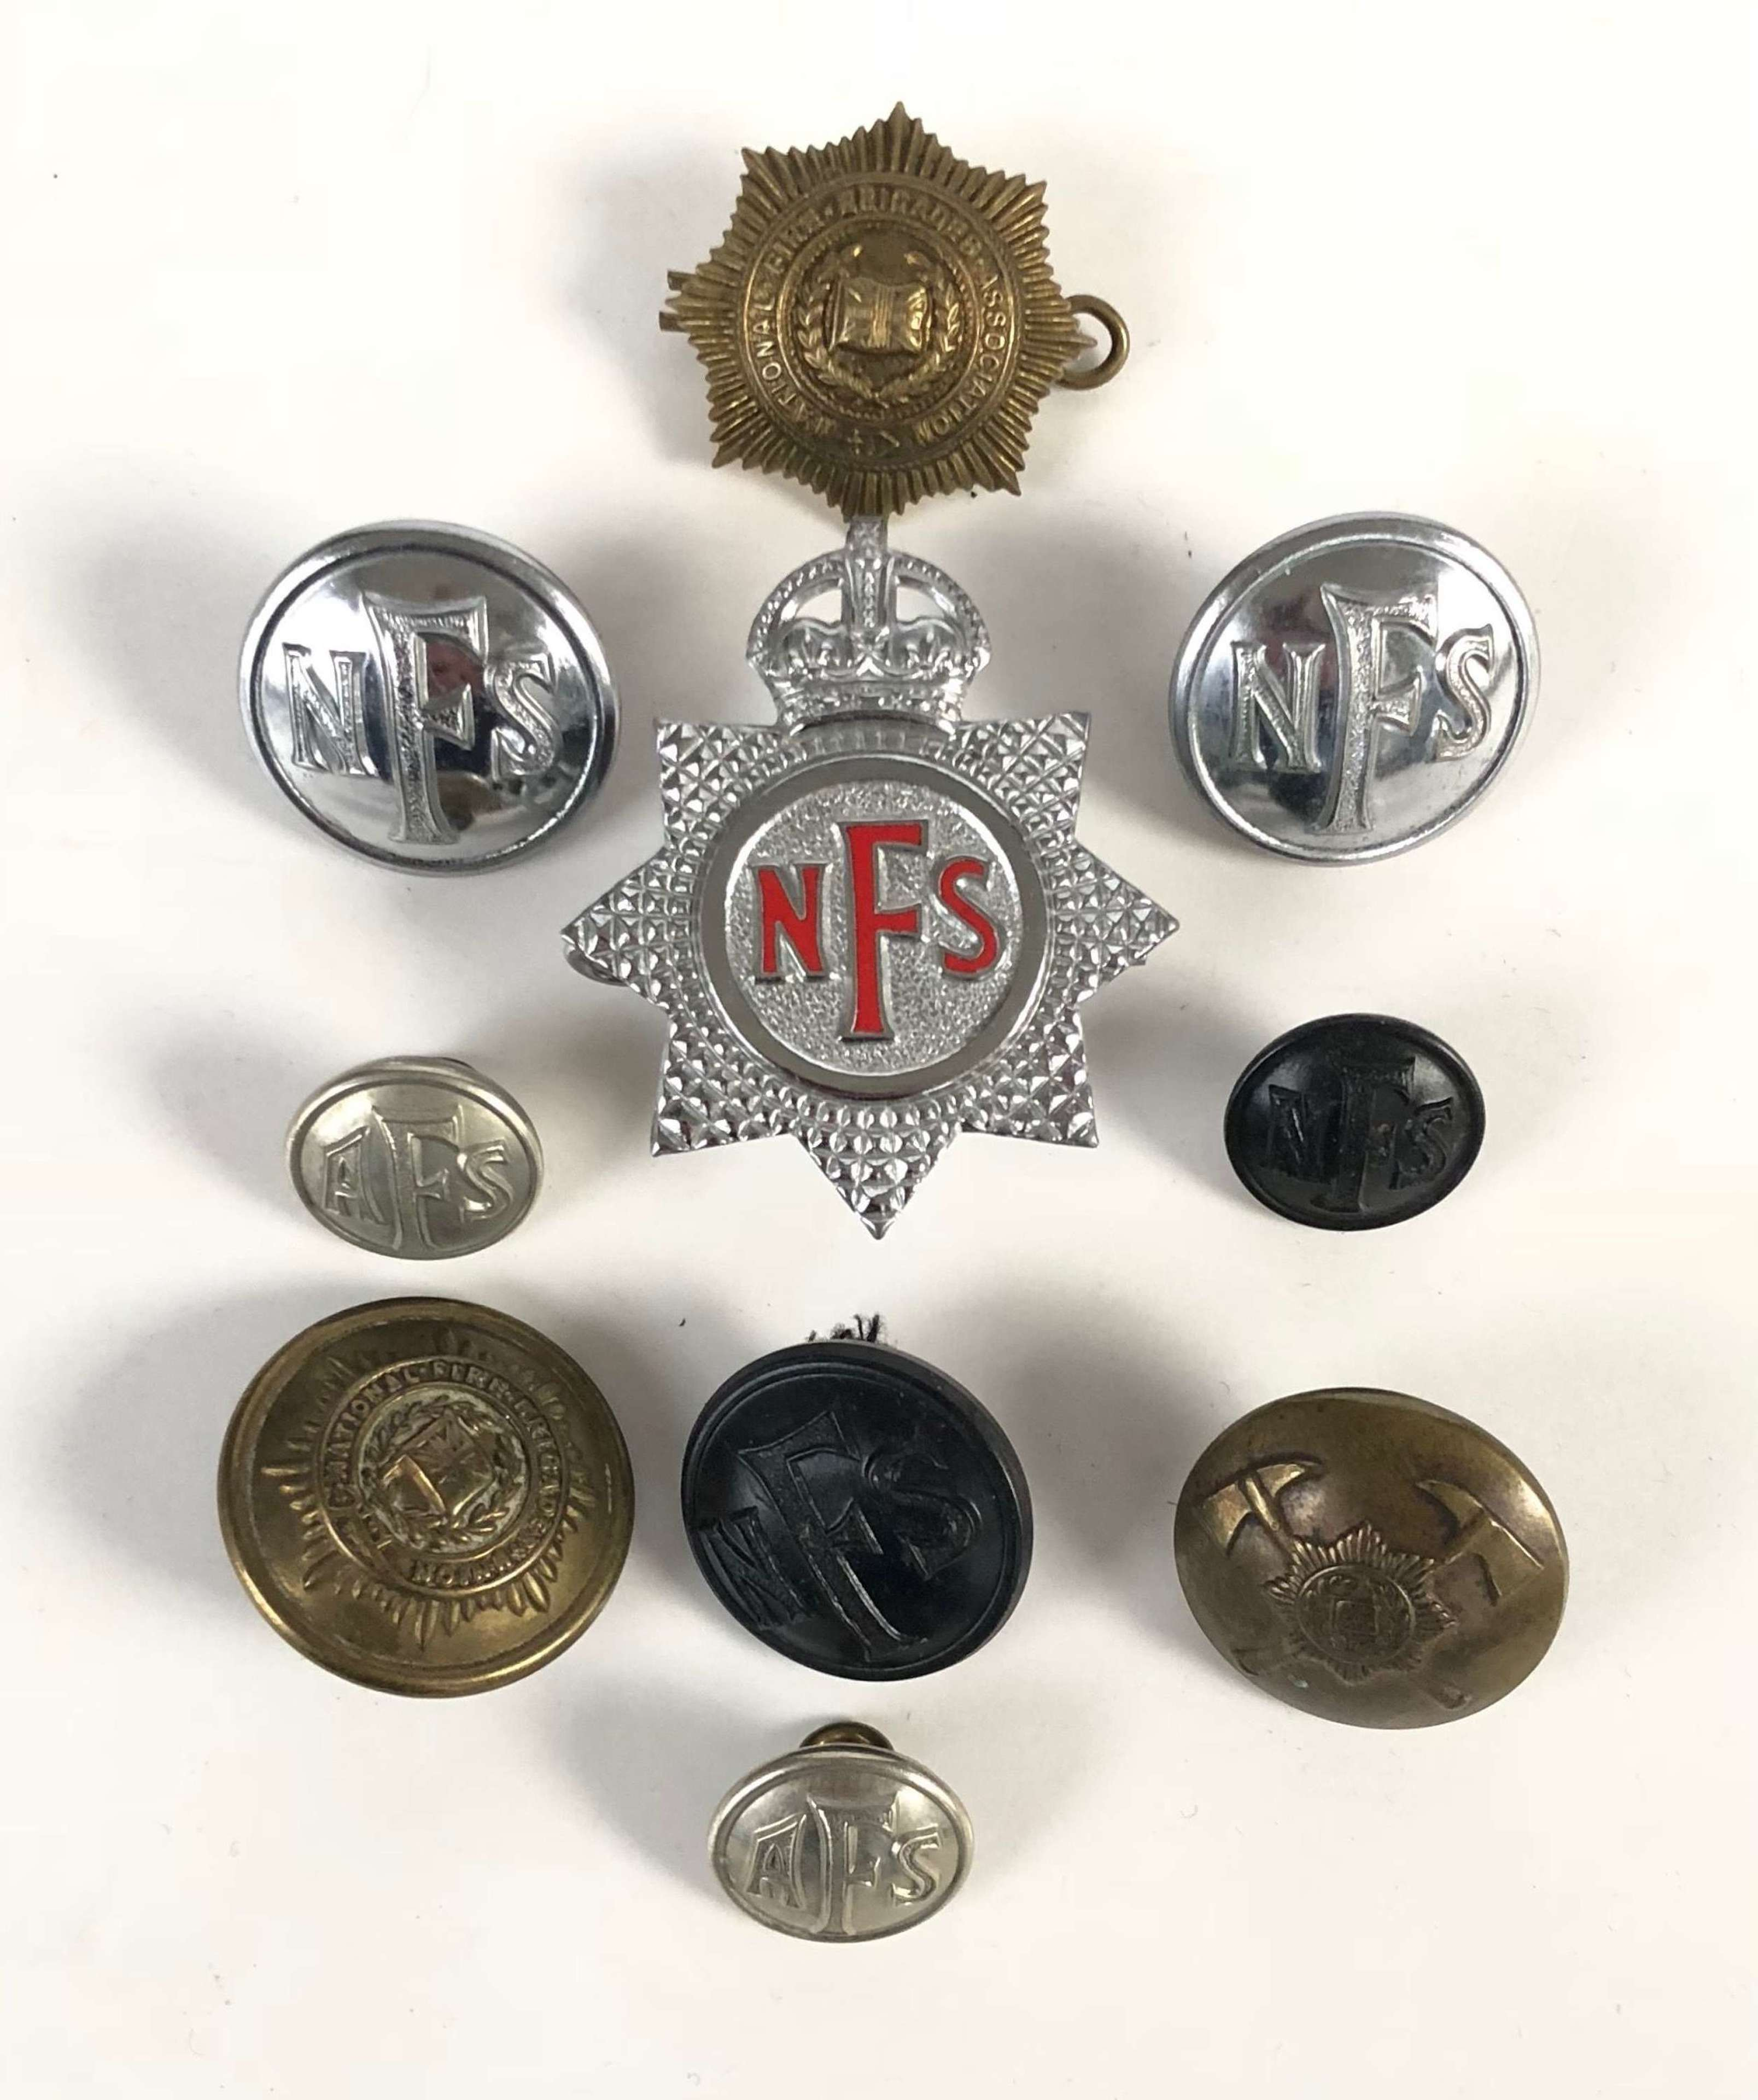 WW2 Period National Fire Service Cap Badge & Buttons.